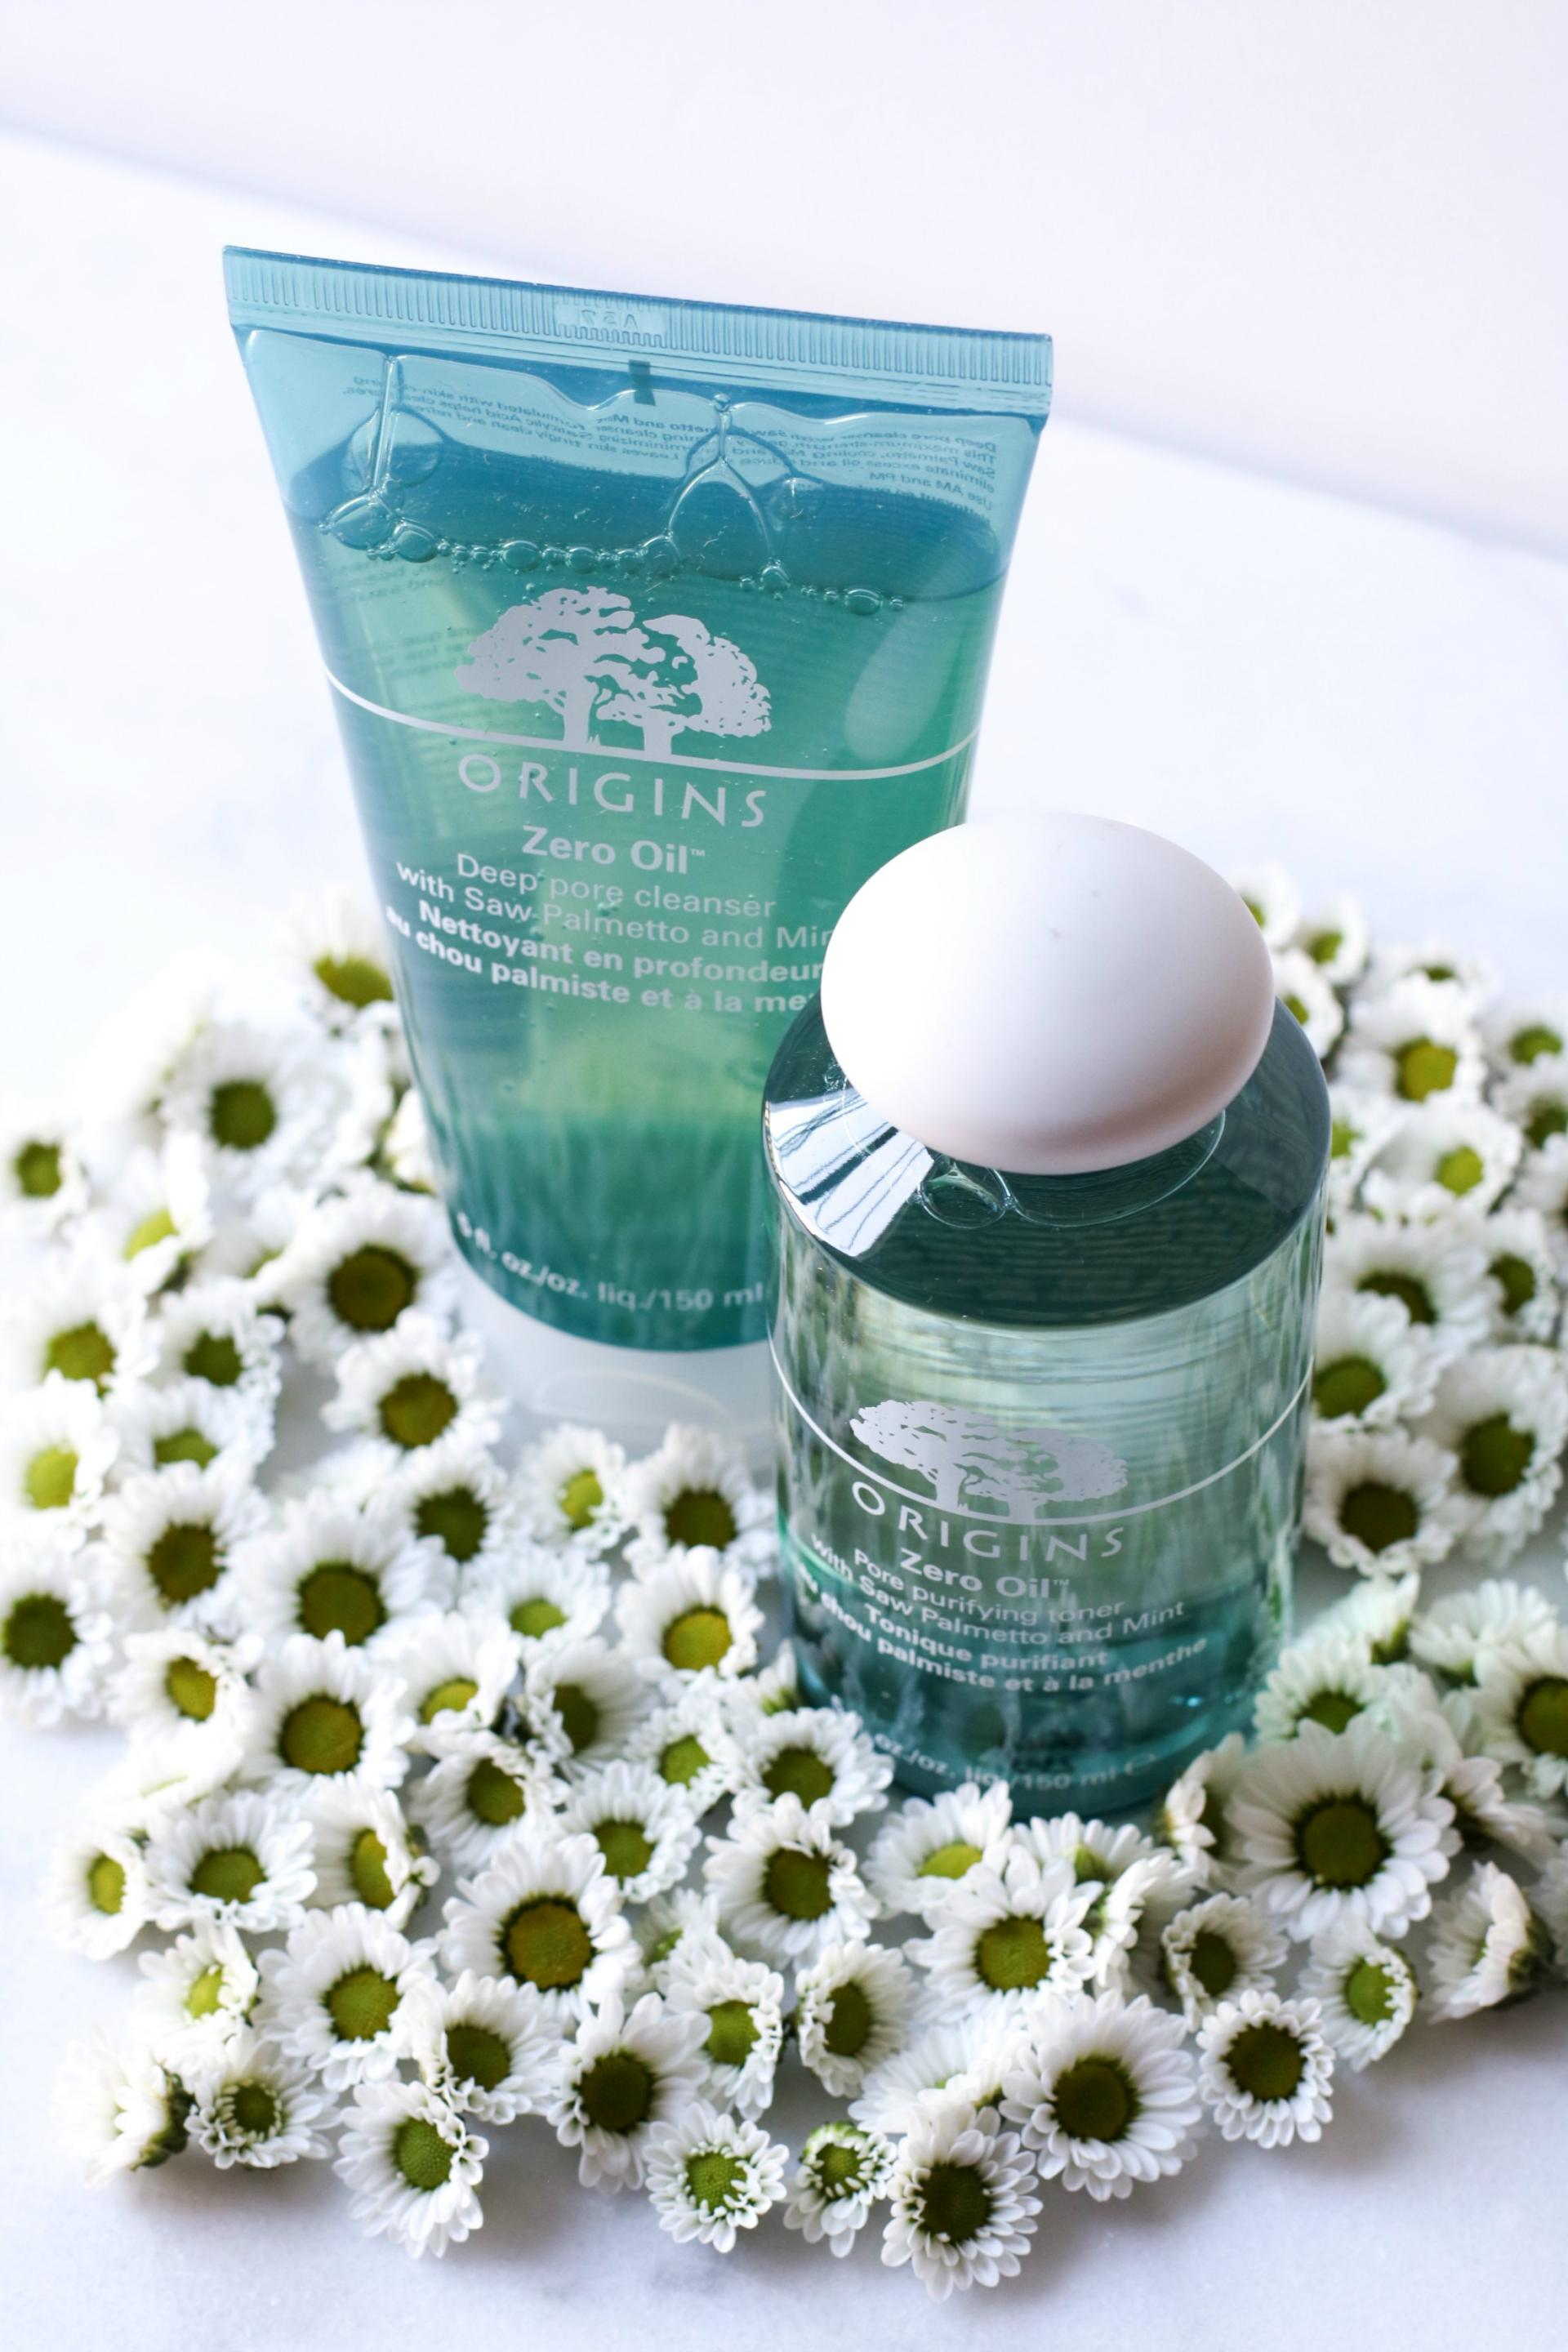 Origins Zero Oil line of products are your rock stars for curbing breakouts and reducing shine. Read on for the full review!